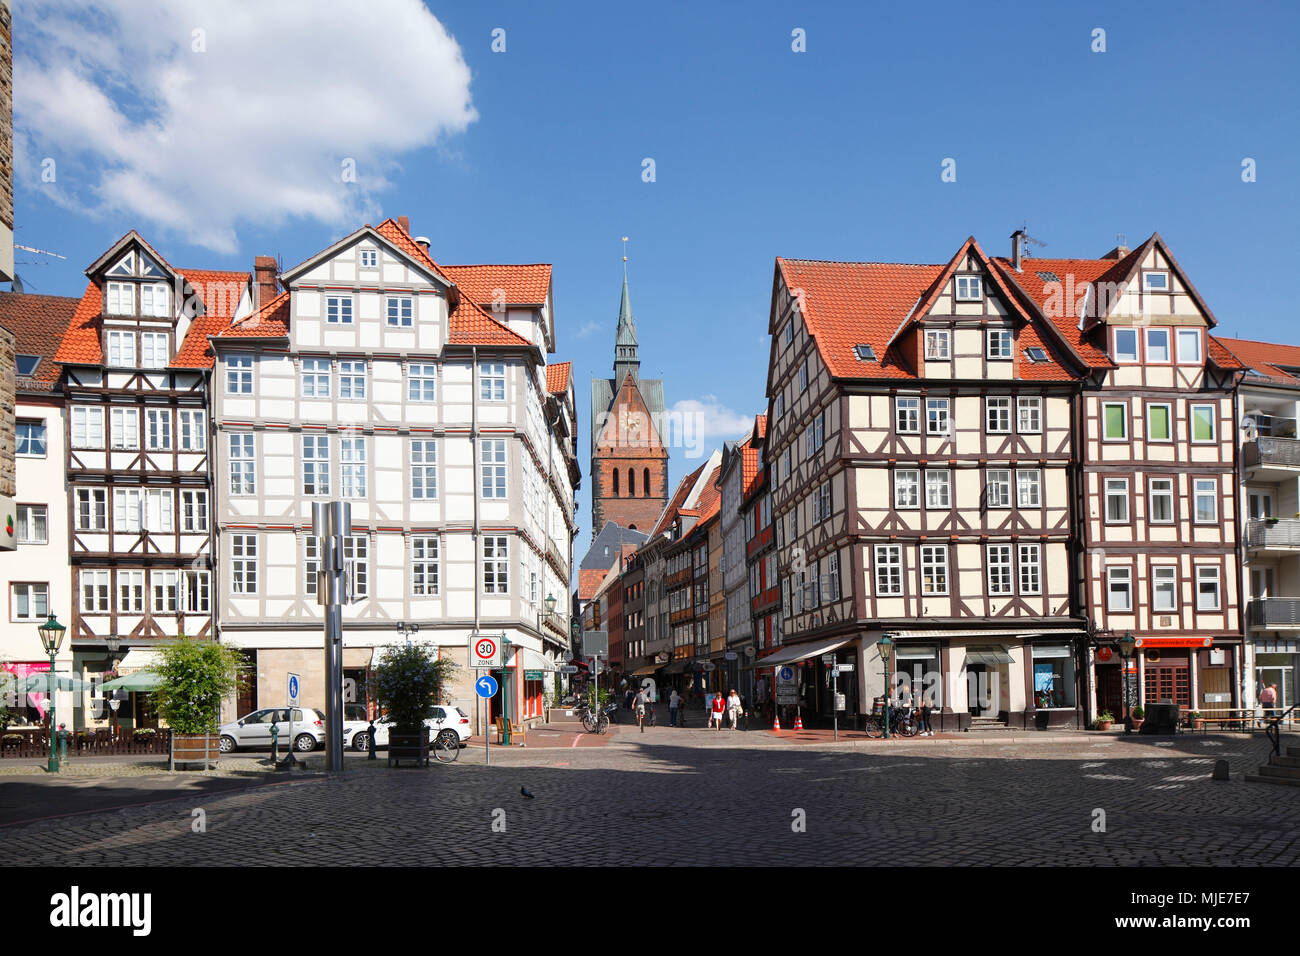 Old town with half-timbered houses and Market Church am Holzmarkt with a view to Kramerstrasse, Hannover, Lower Saxony, Germany, Europe - Stock Image